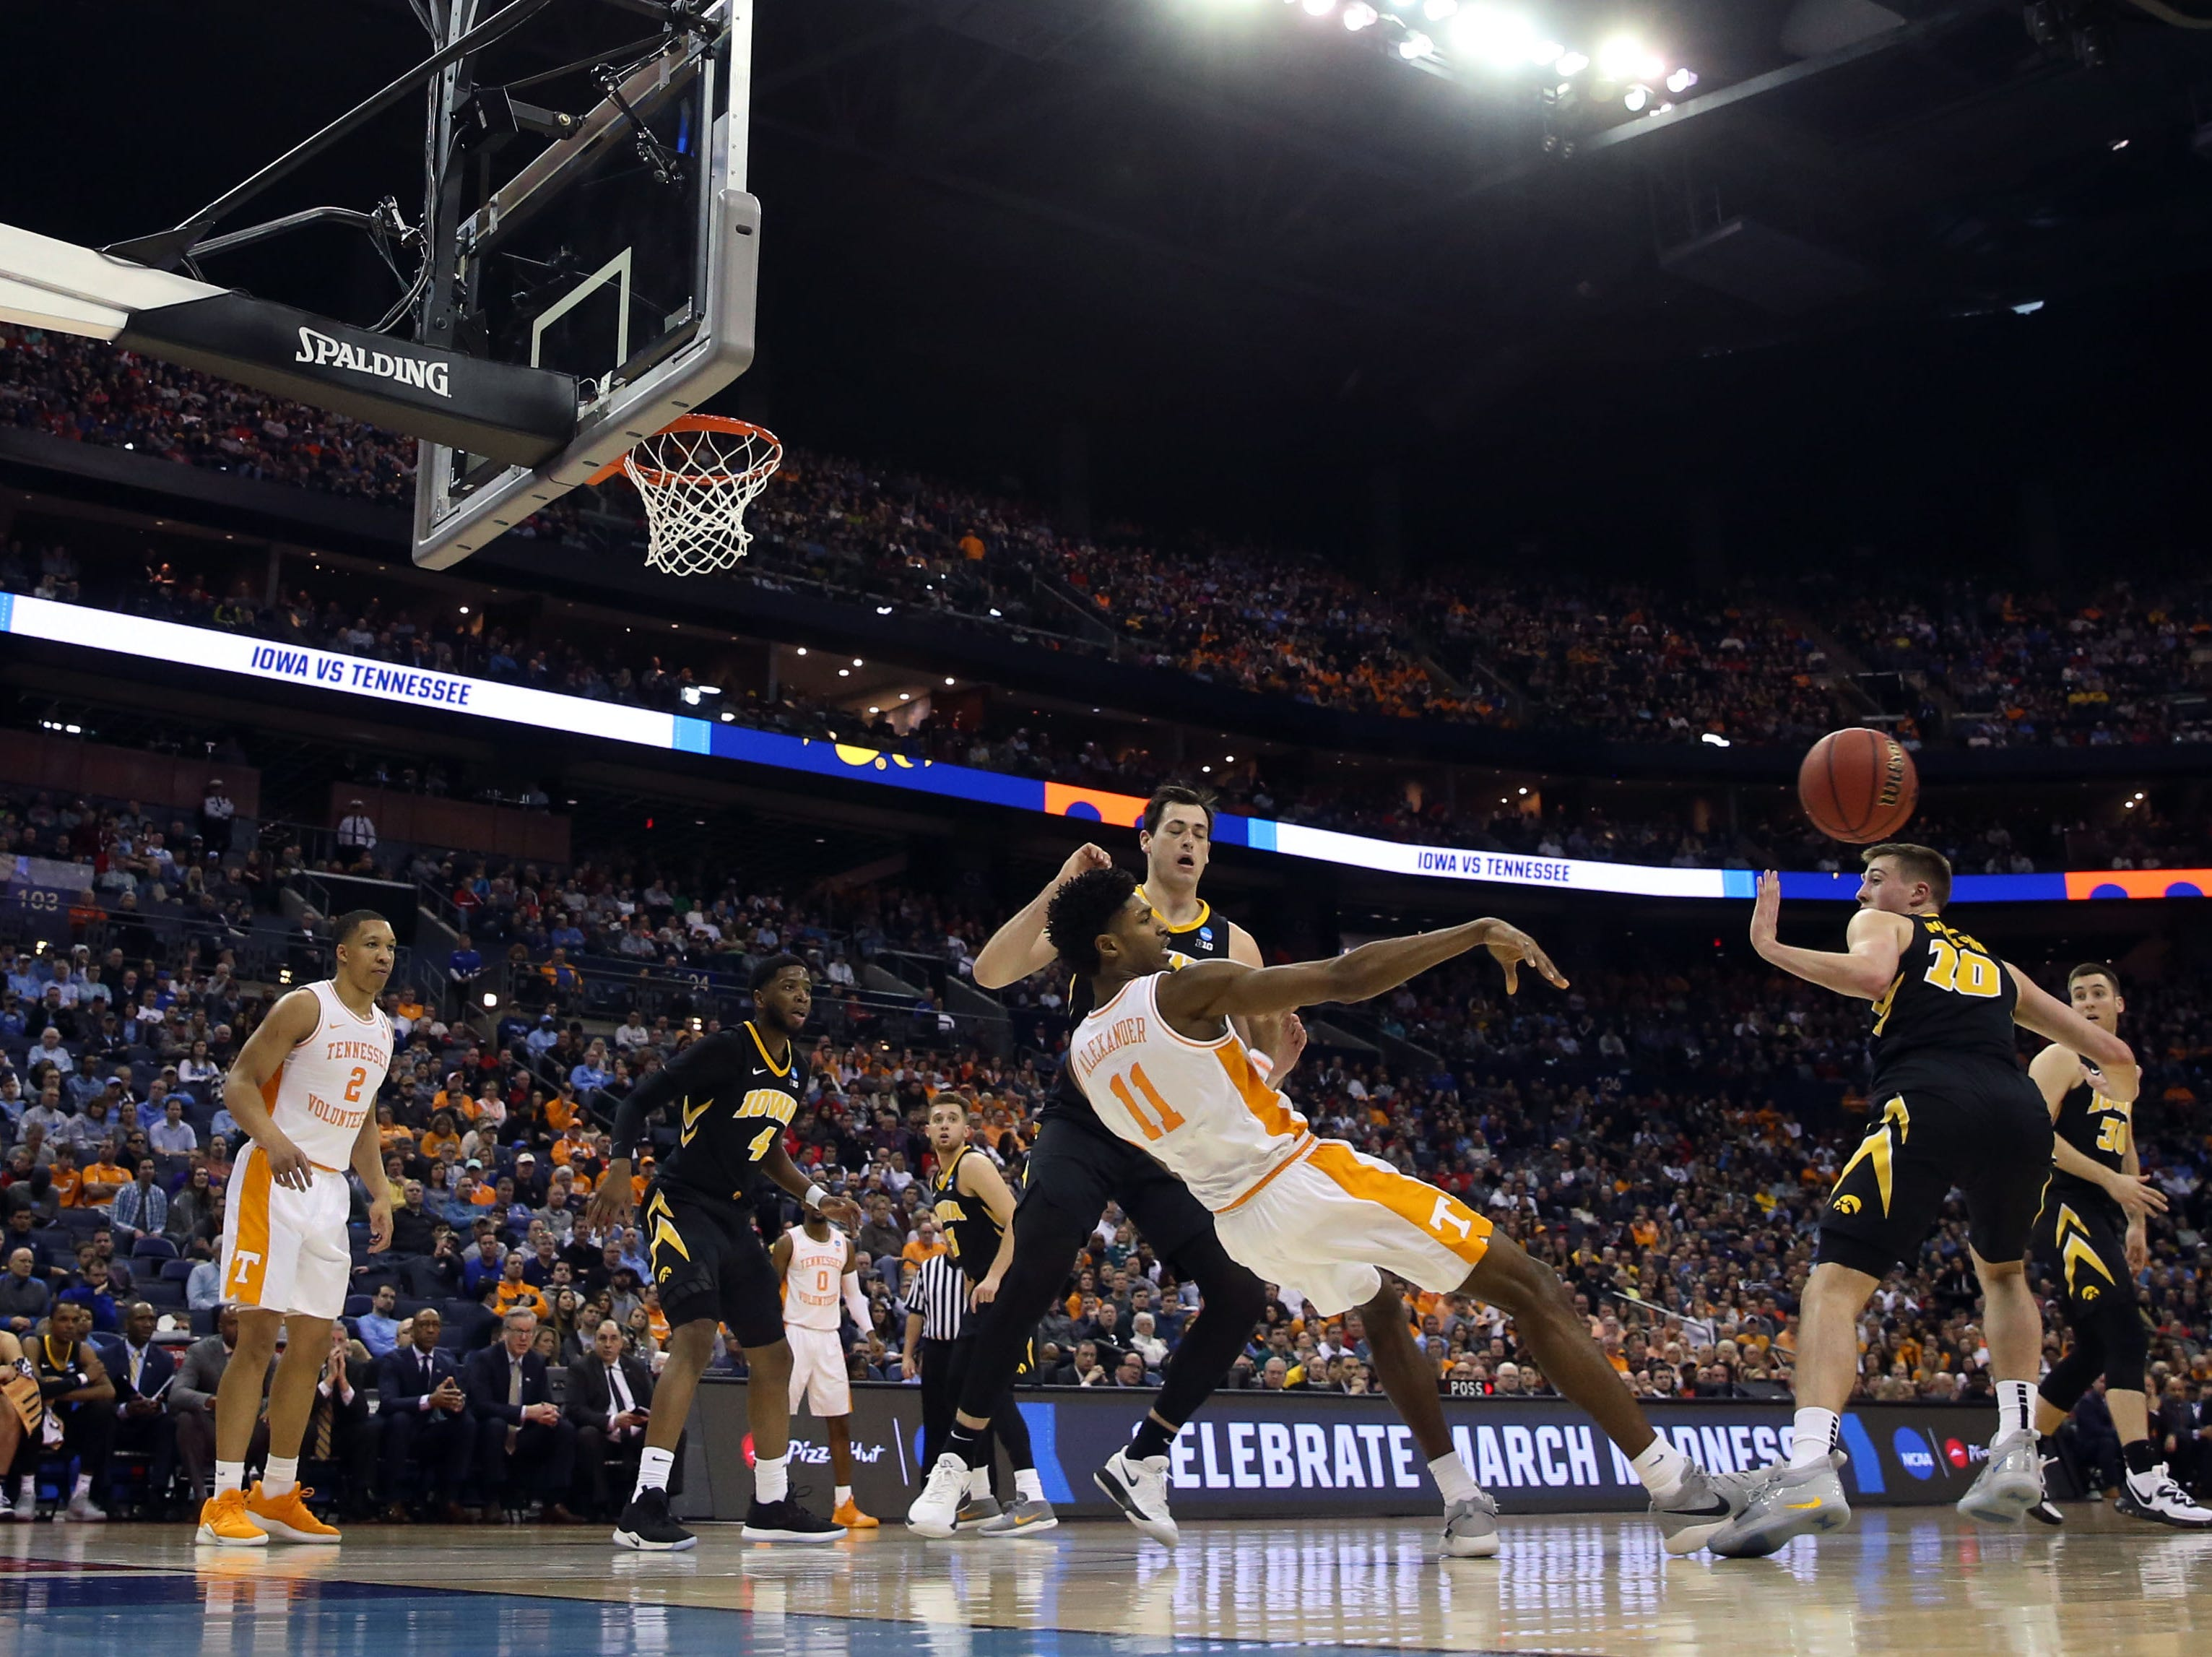 Tennessee Volunteers forward Kyle Alexander (11) falls to the ground while passing the ball in the first half against the Iowa Hawkeyes  in the second round of the 2019 NCAA Tournament at Nationwide Arena.